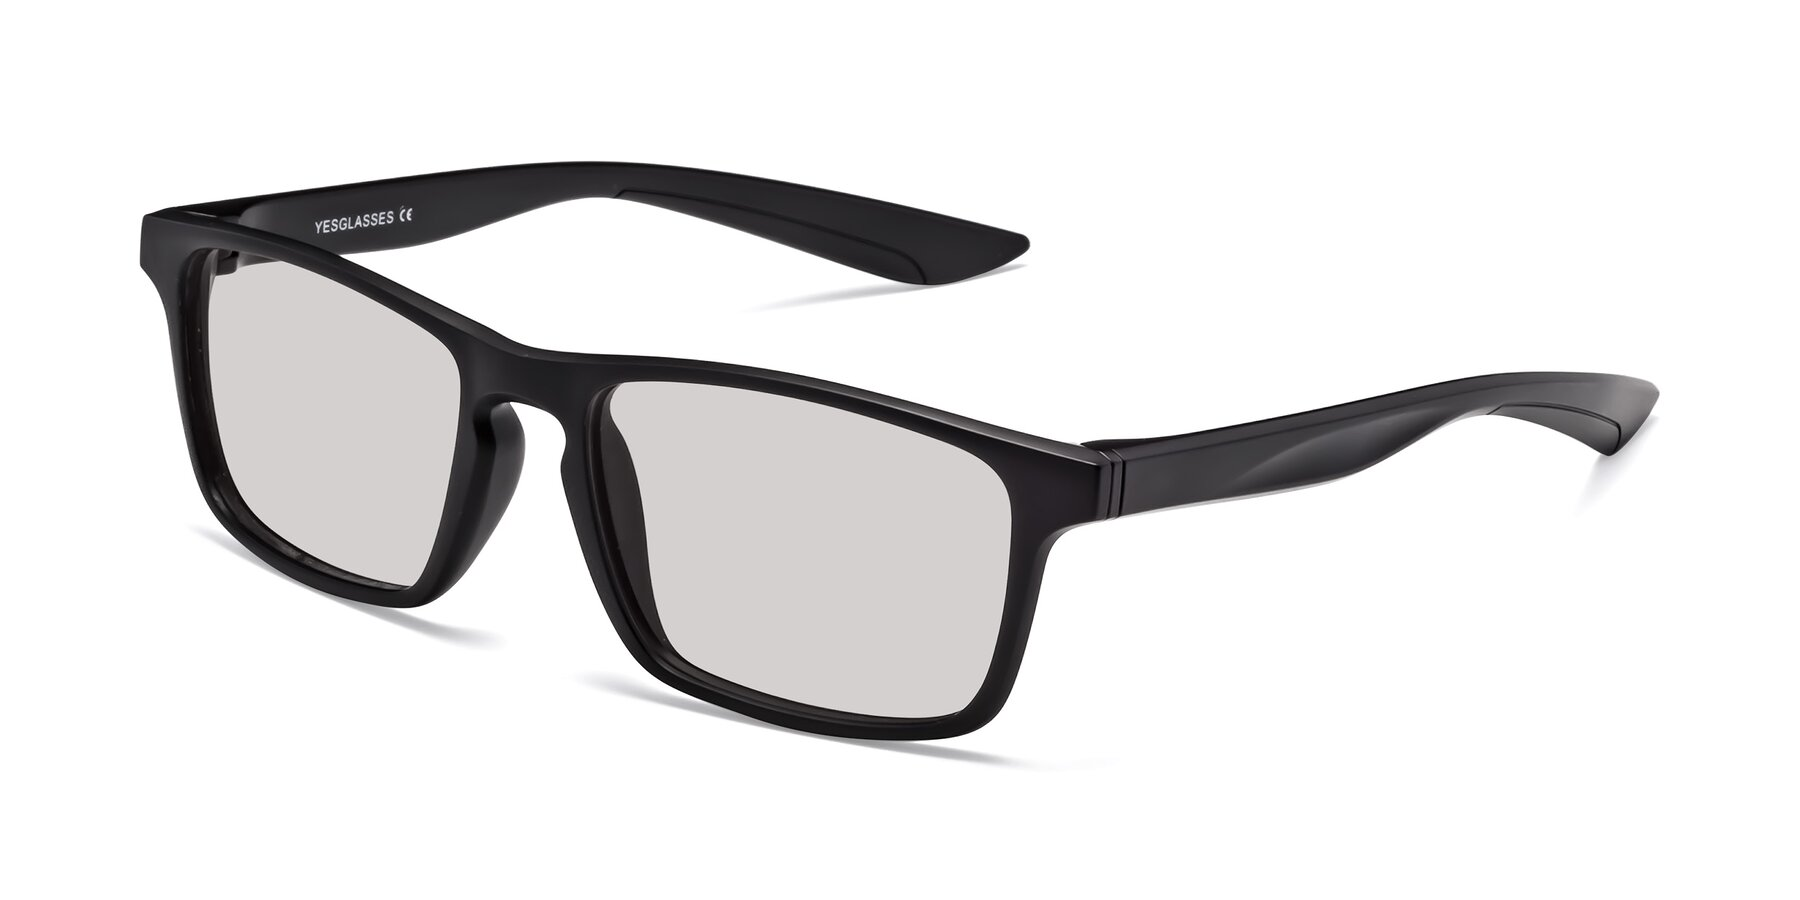 Angle of Passion in Matte Black with Light Gray Tinted Lenses